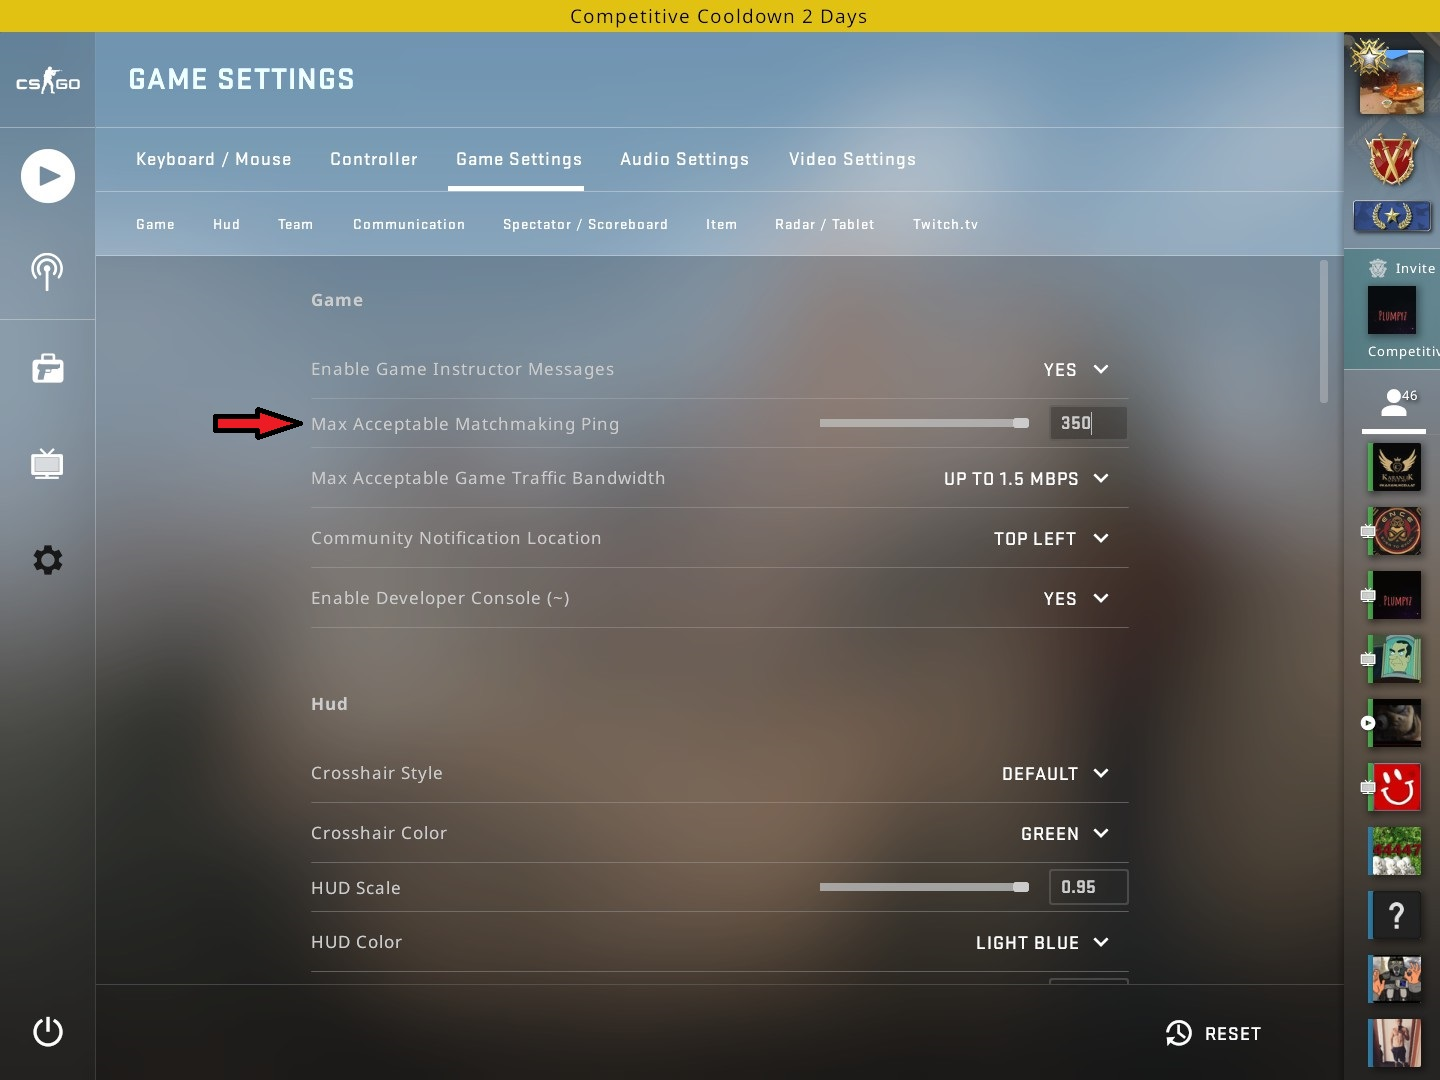 Impossible de se connecter au serveur de matchmaking CSGO